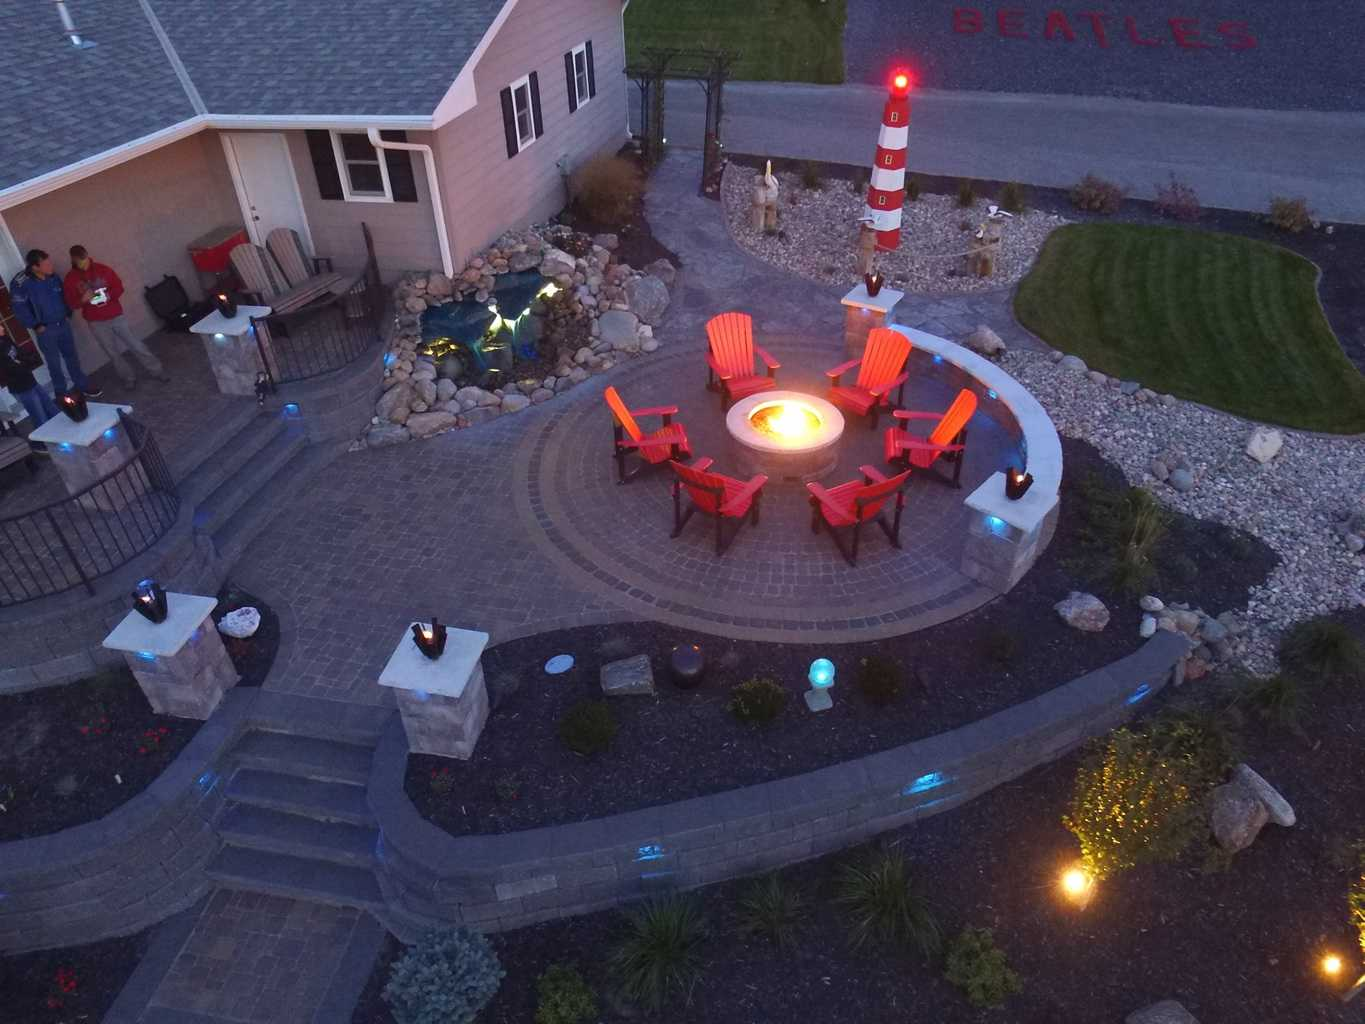 Landscaping / Hardscaping